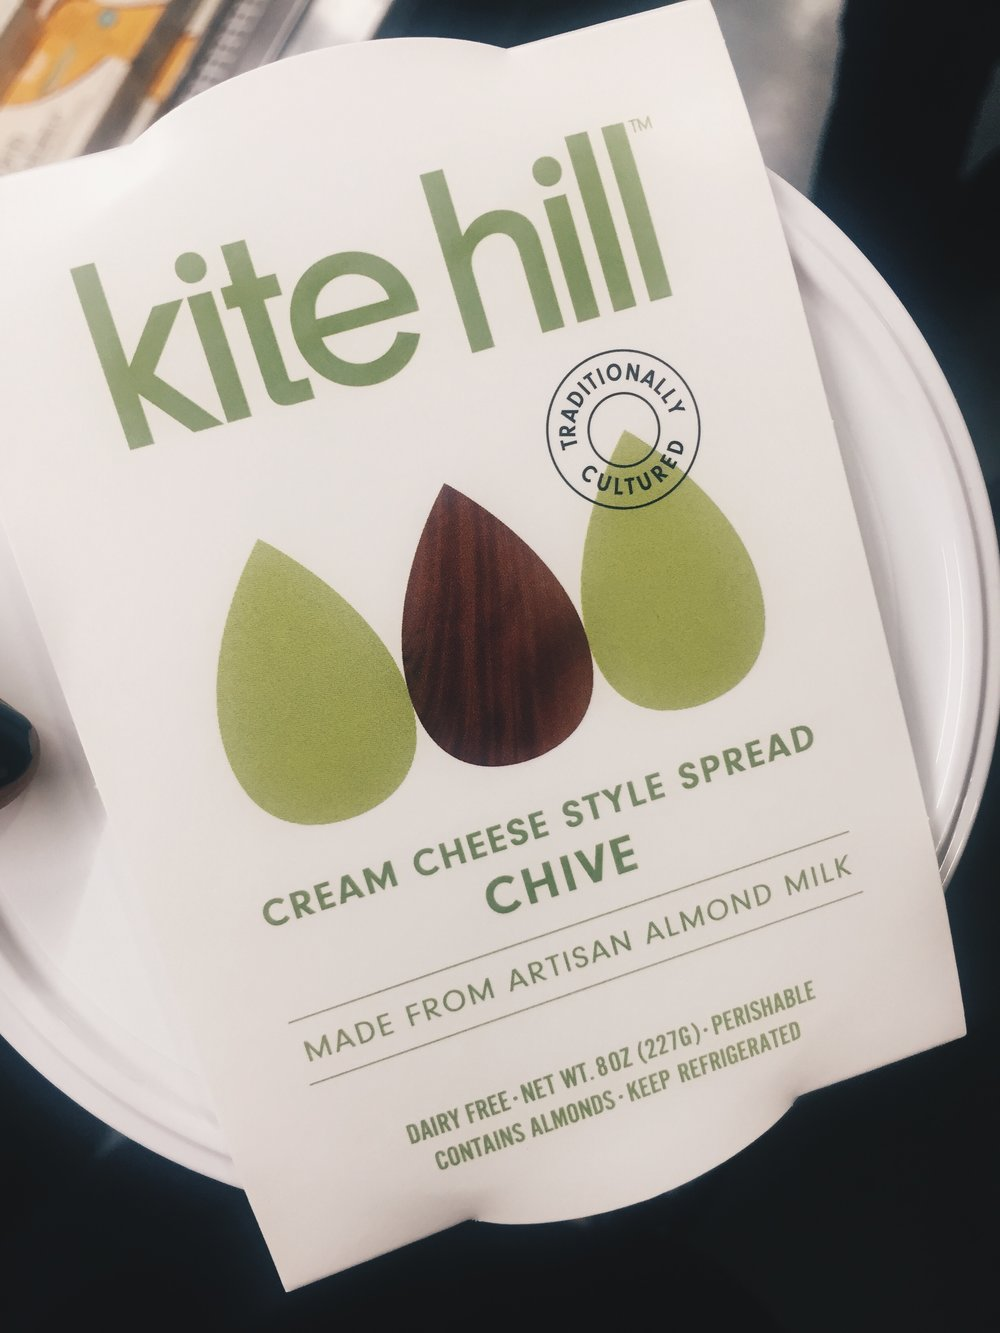 """if you have any issues w dairy GET THIS BRAND. i LOVE cream cheese but it's on the naughty list for now so this is the ultimate """"trick your mind"""" alternative. tastes amazing and made from almonds. what a time to be alive. read their story  here !!"""